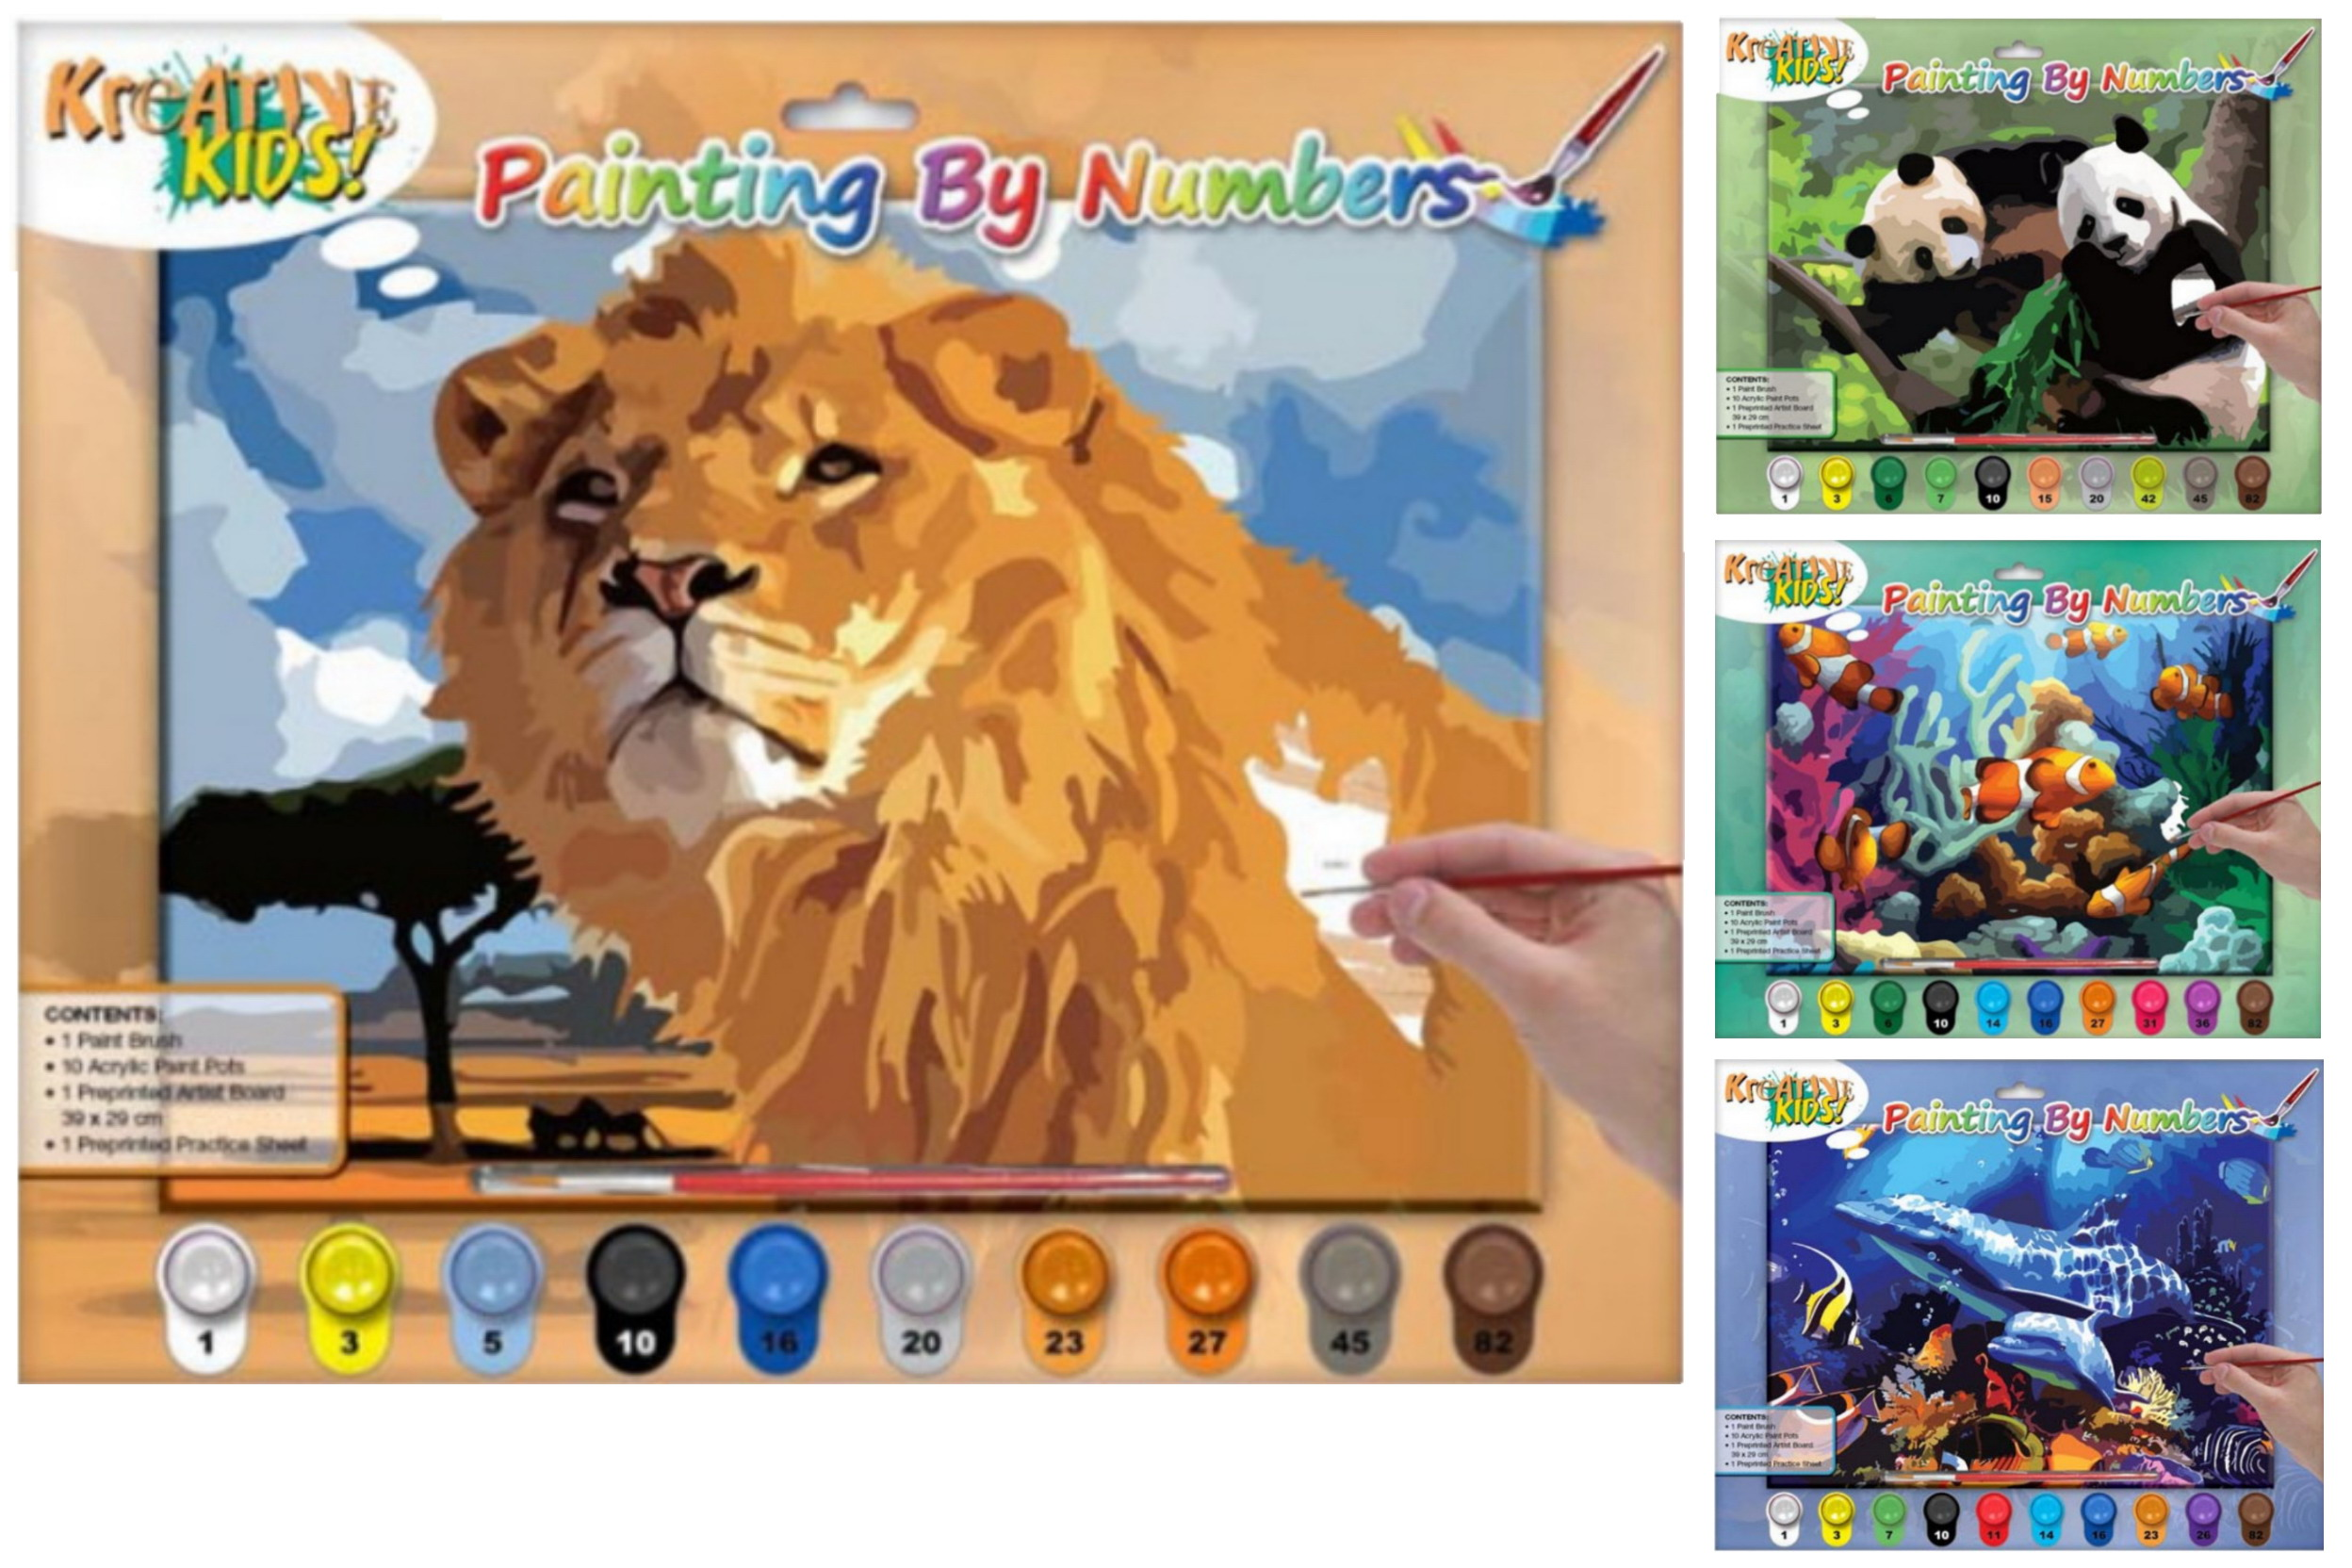 Painting By Numbers With 10 Paints - 6 Assorted